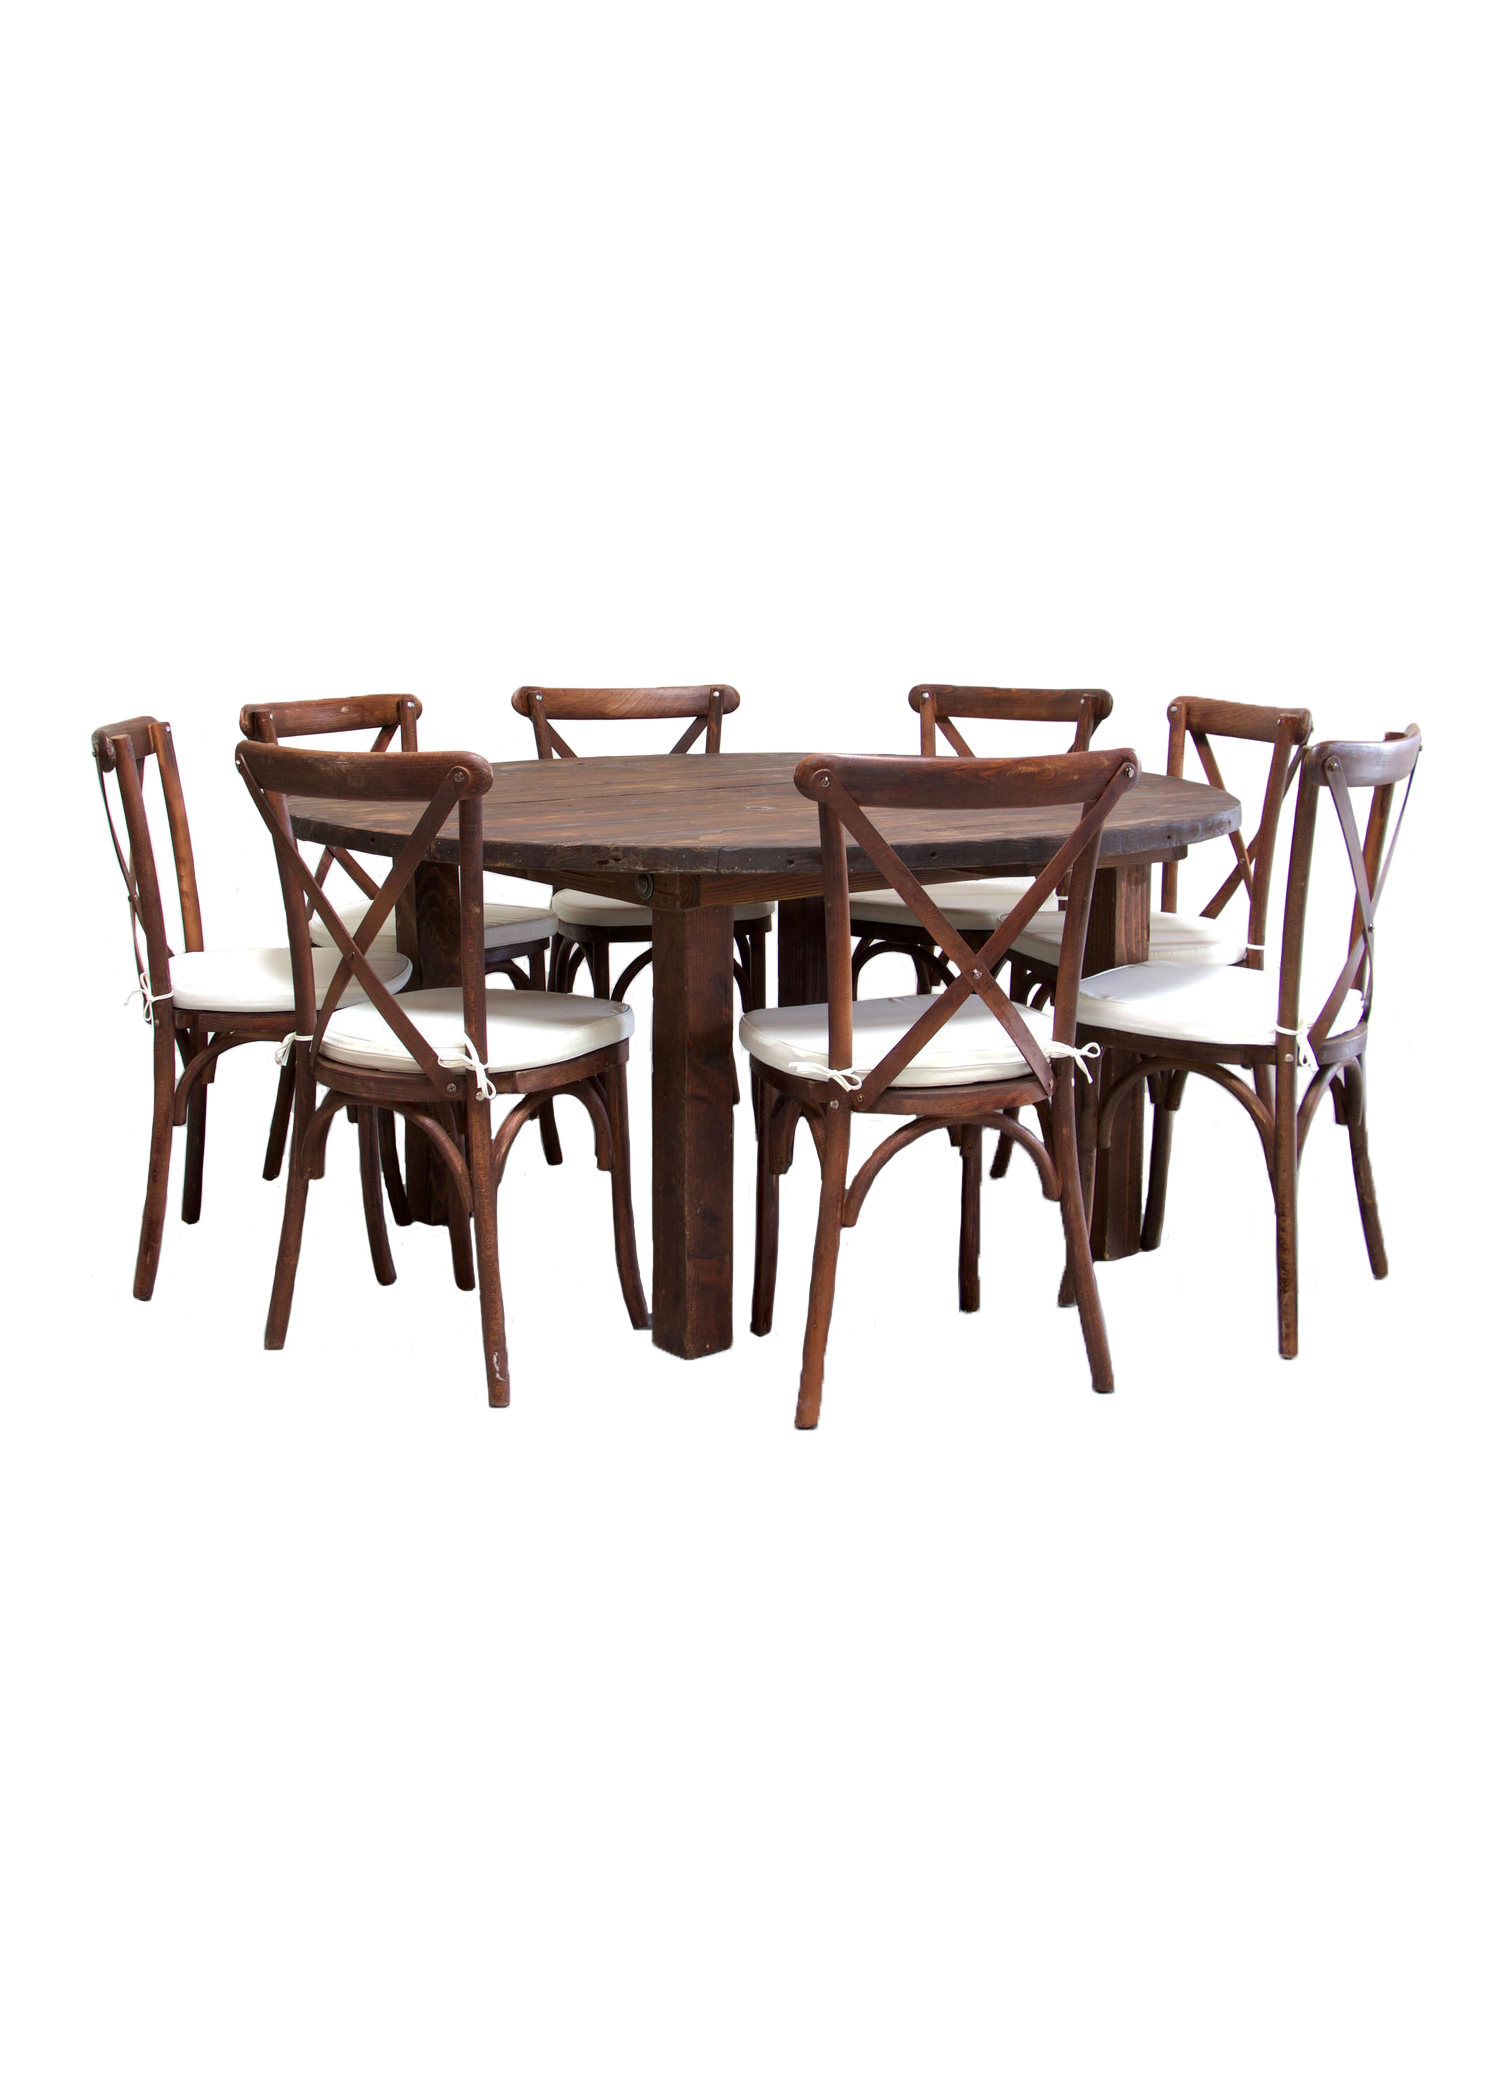 Mahogany Round Farm Table with 8 Cross-Back Chairs $145